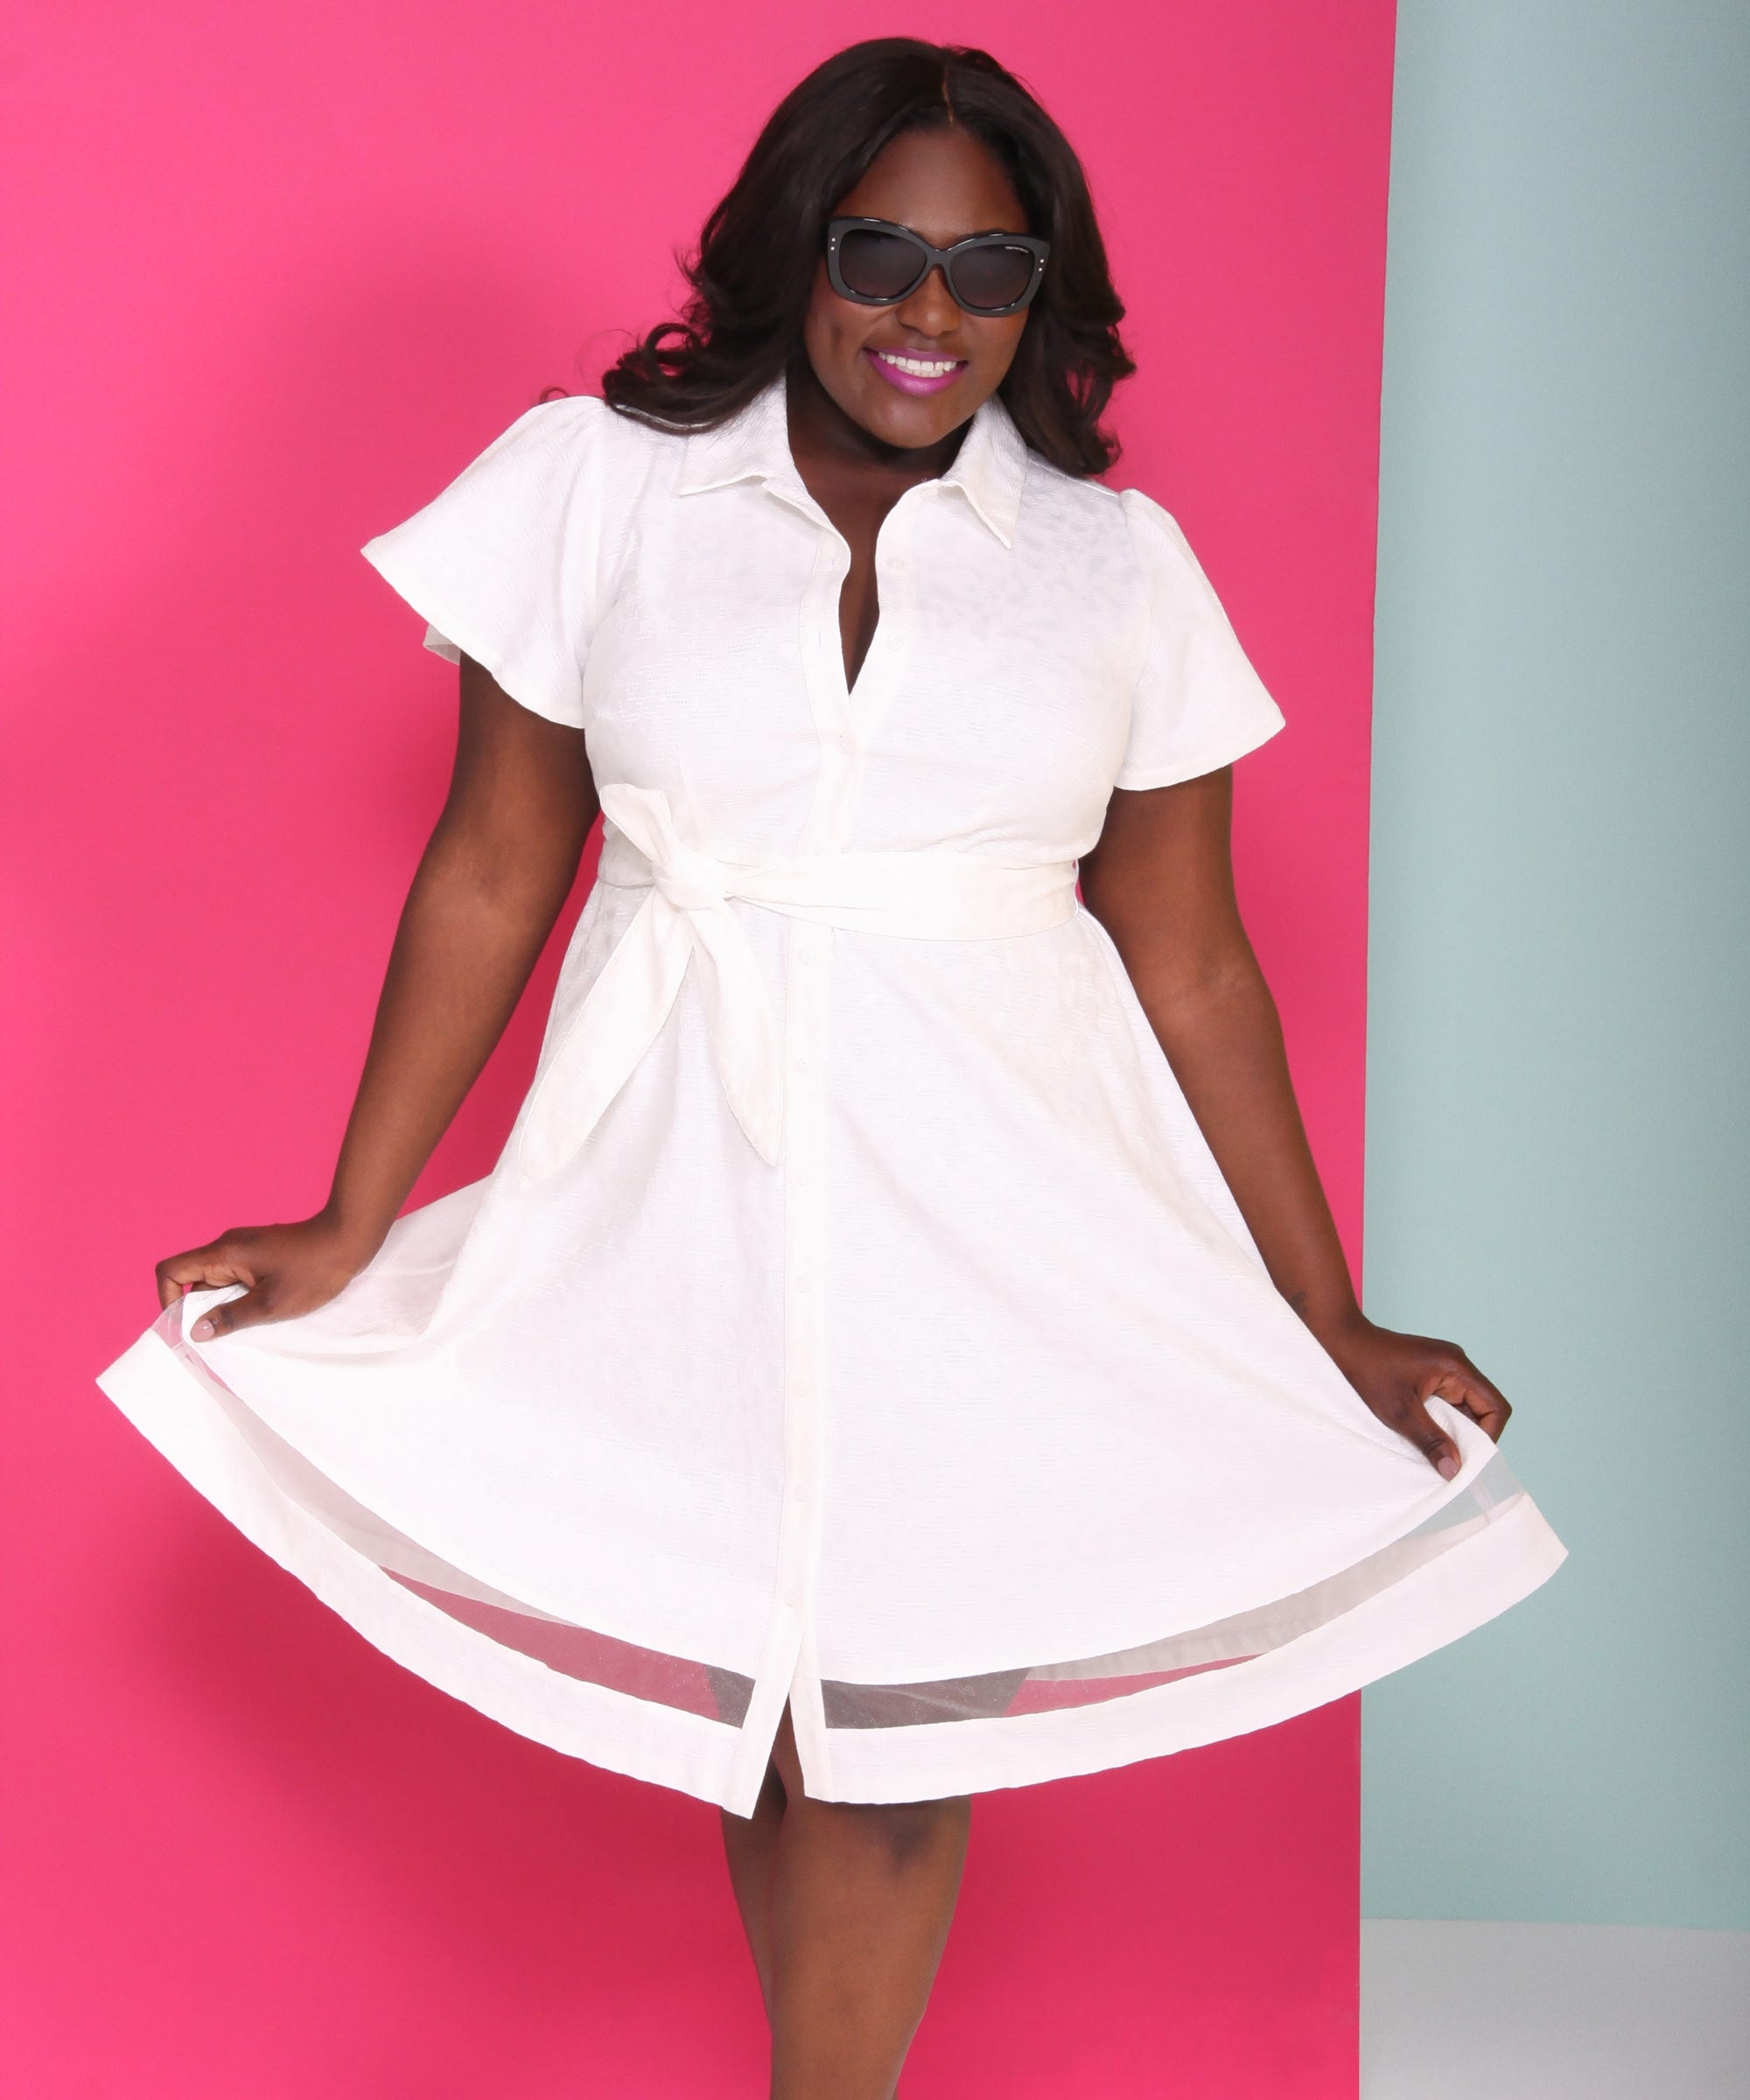 Lane Bryant Christian Siriano Plus Size Collaboration